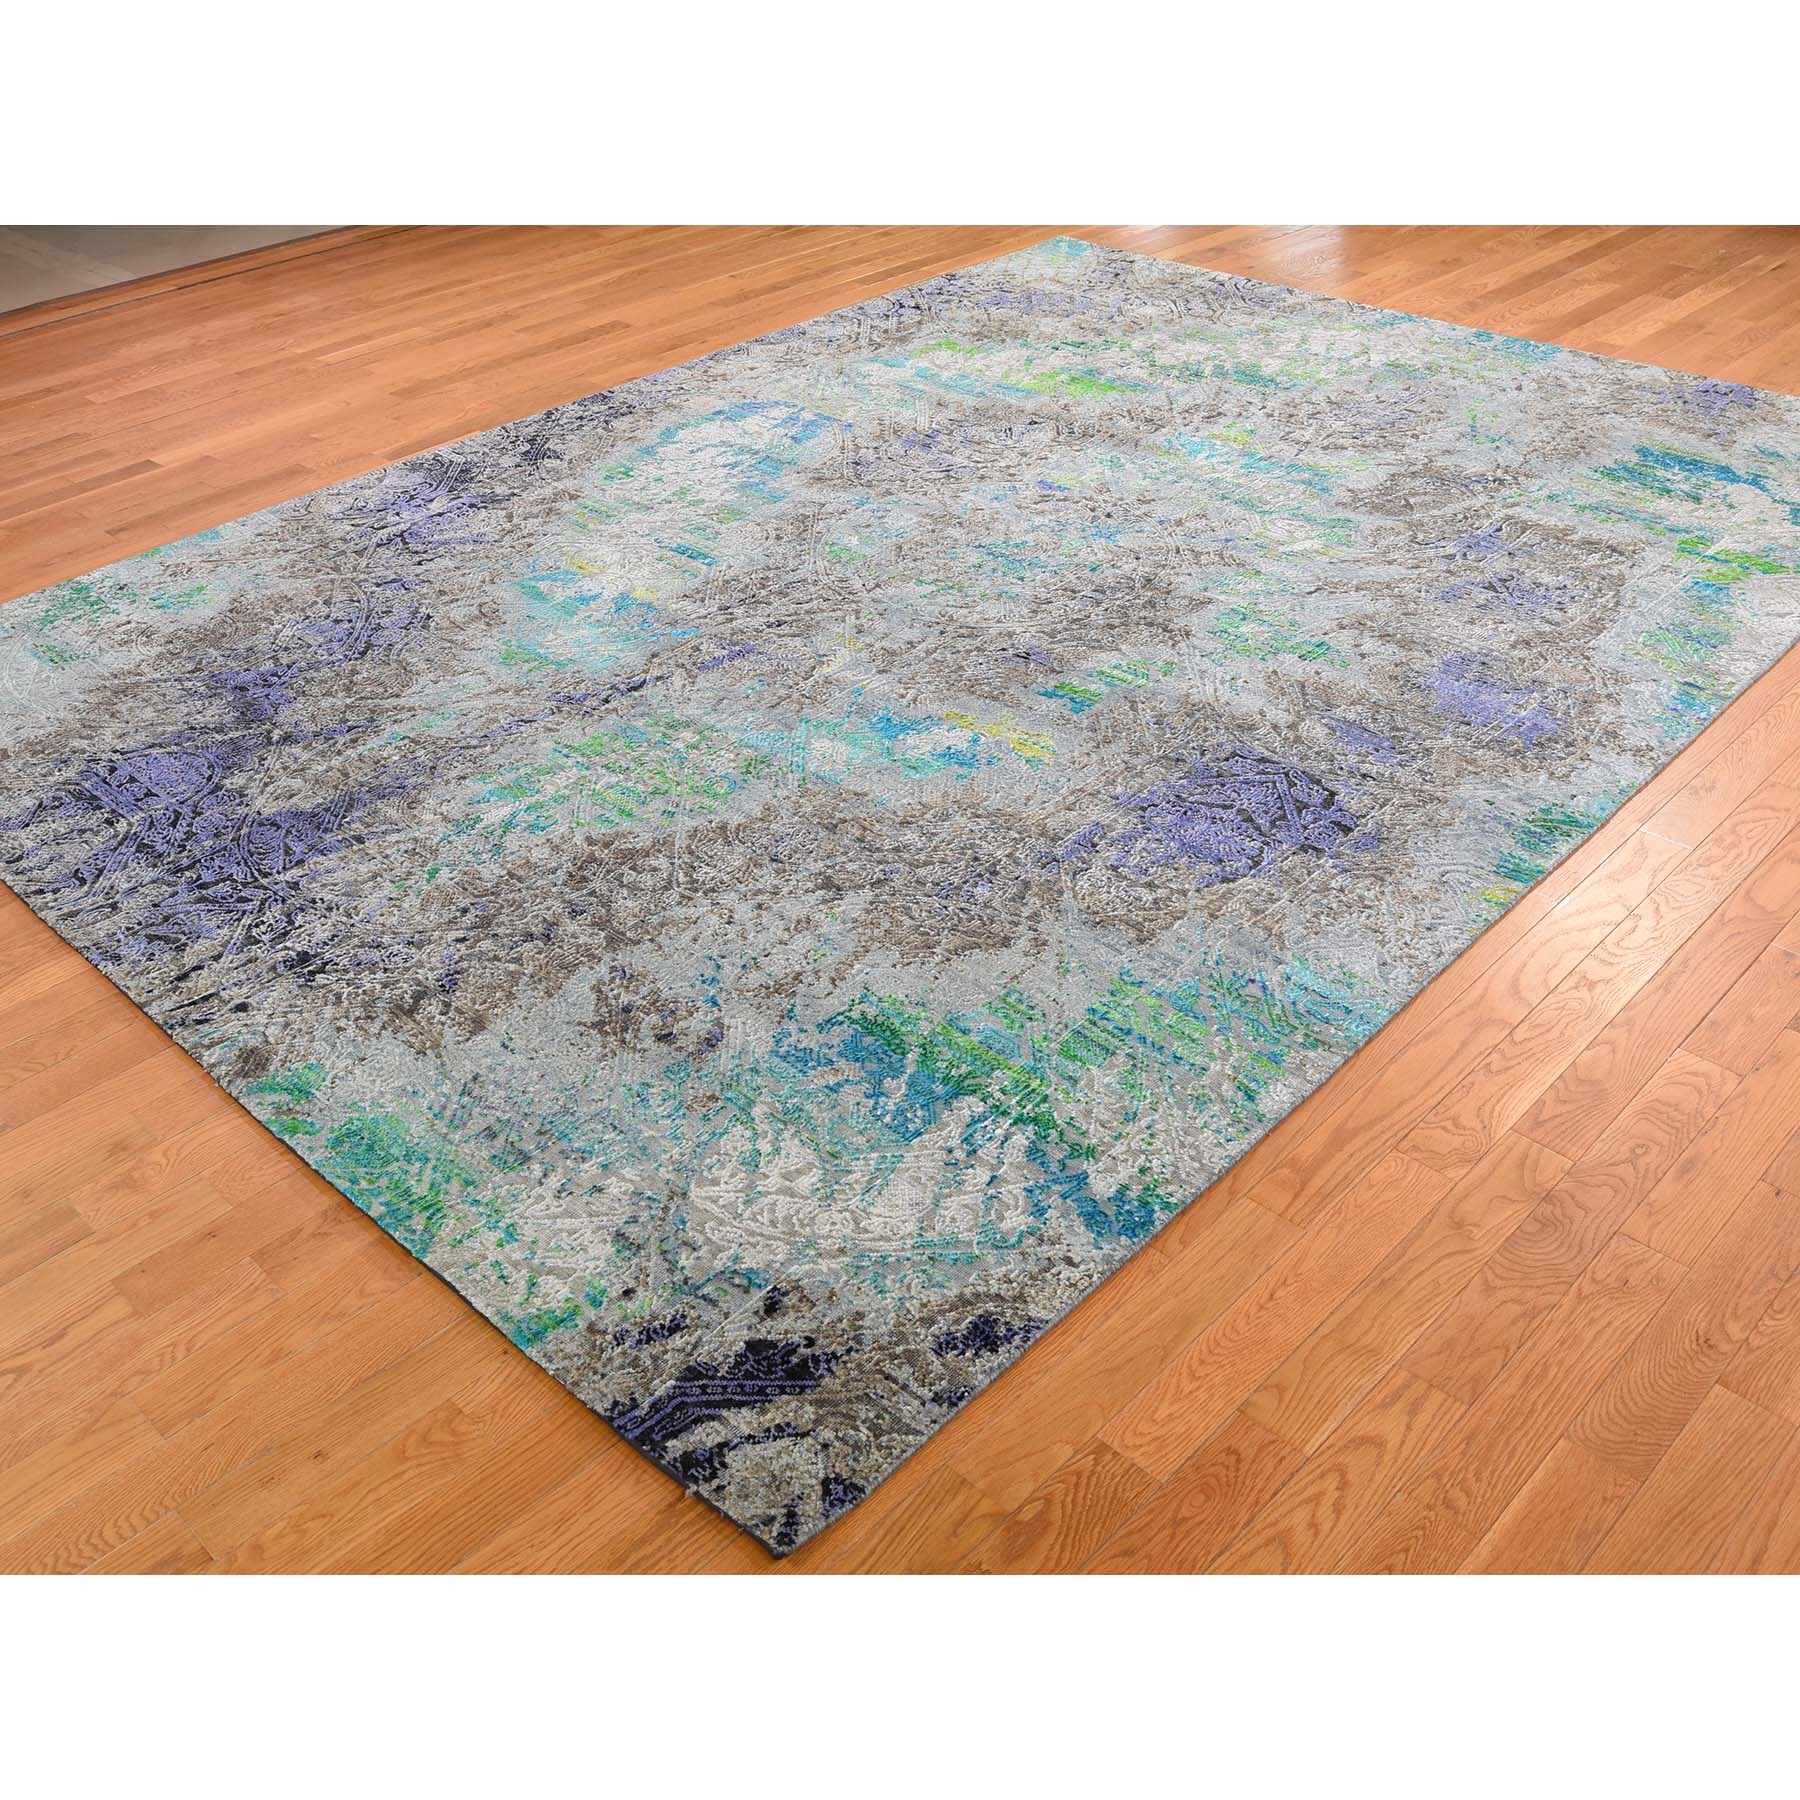 "Handmade Modern and Contemporary Rectangle Rug > Design# SH45709 > Size: 8'-9"" x 11'-10"" [ONLINE ONLY]"